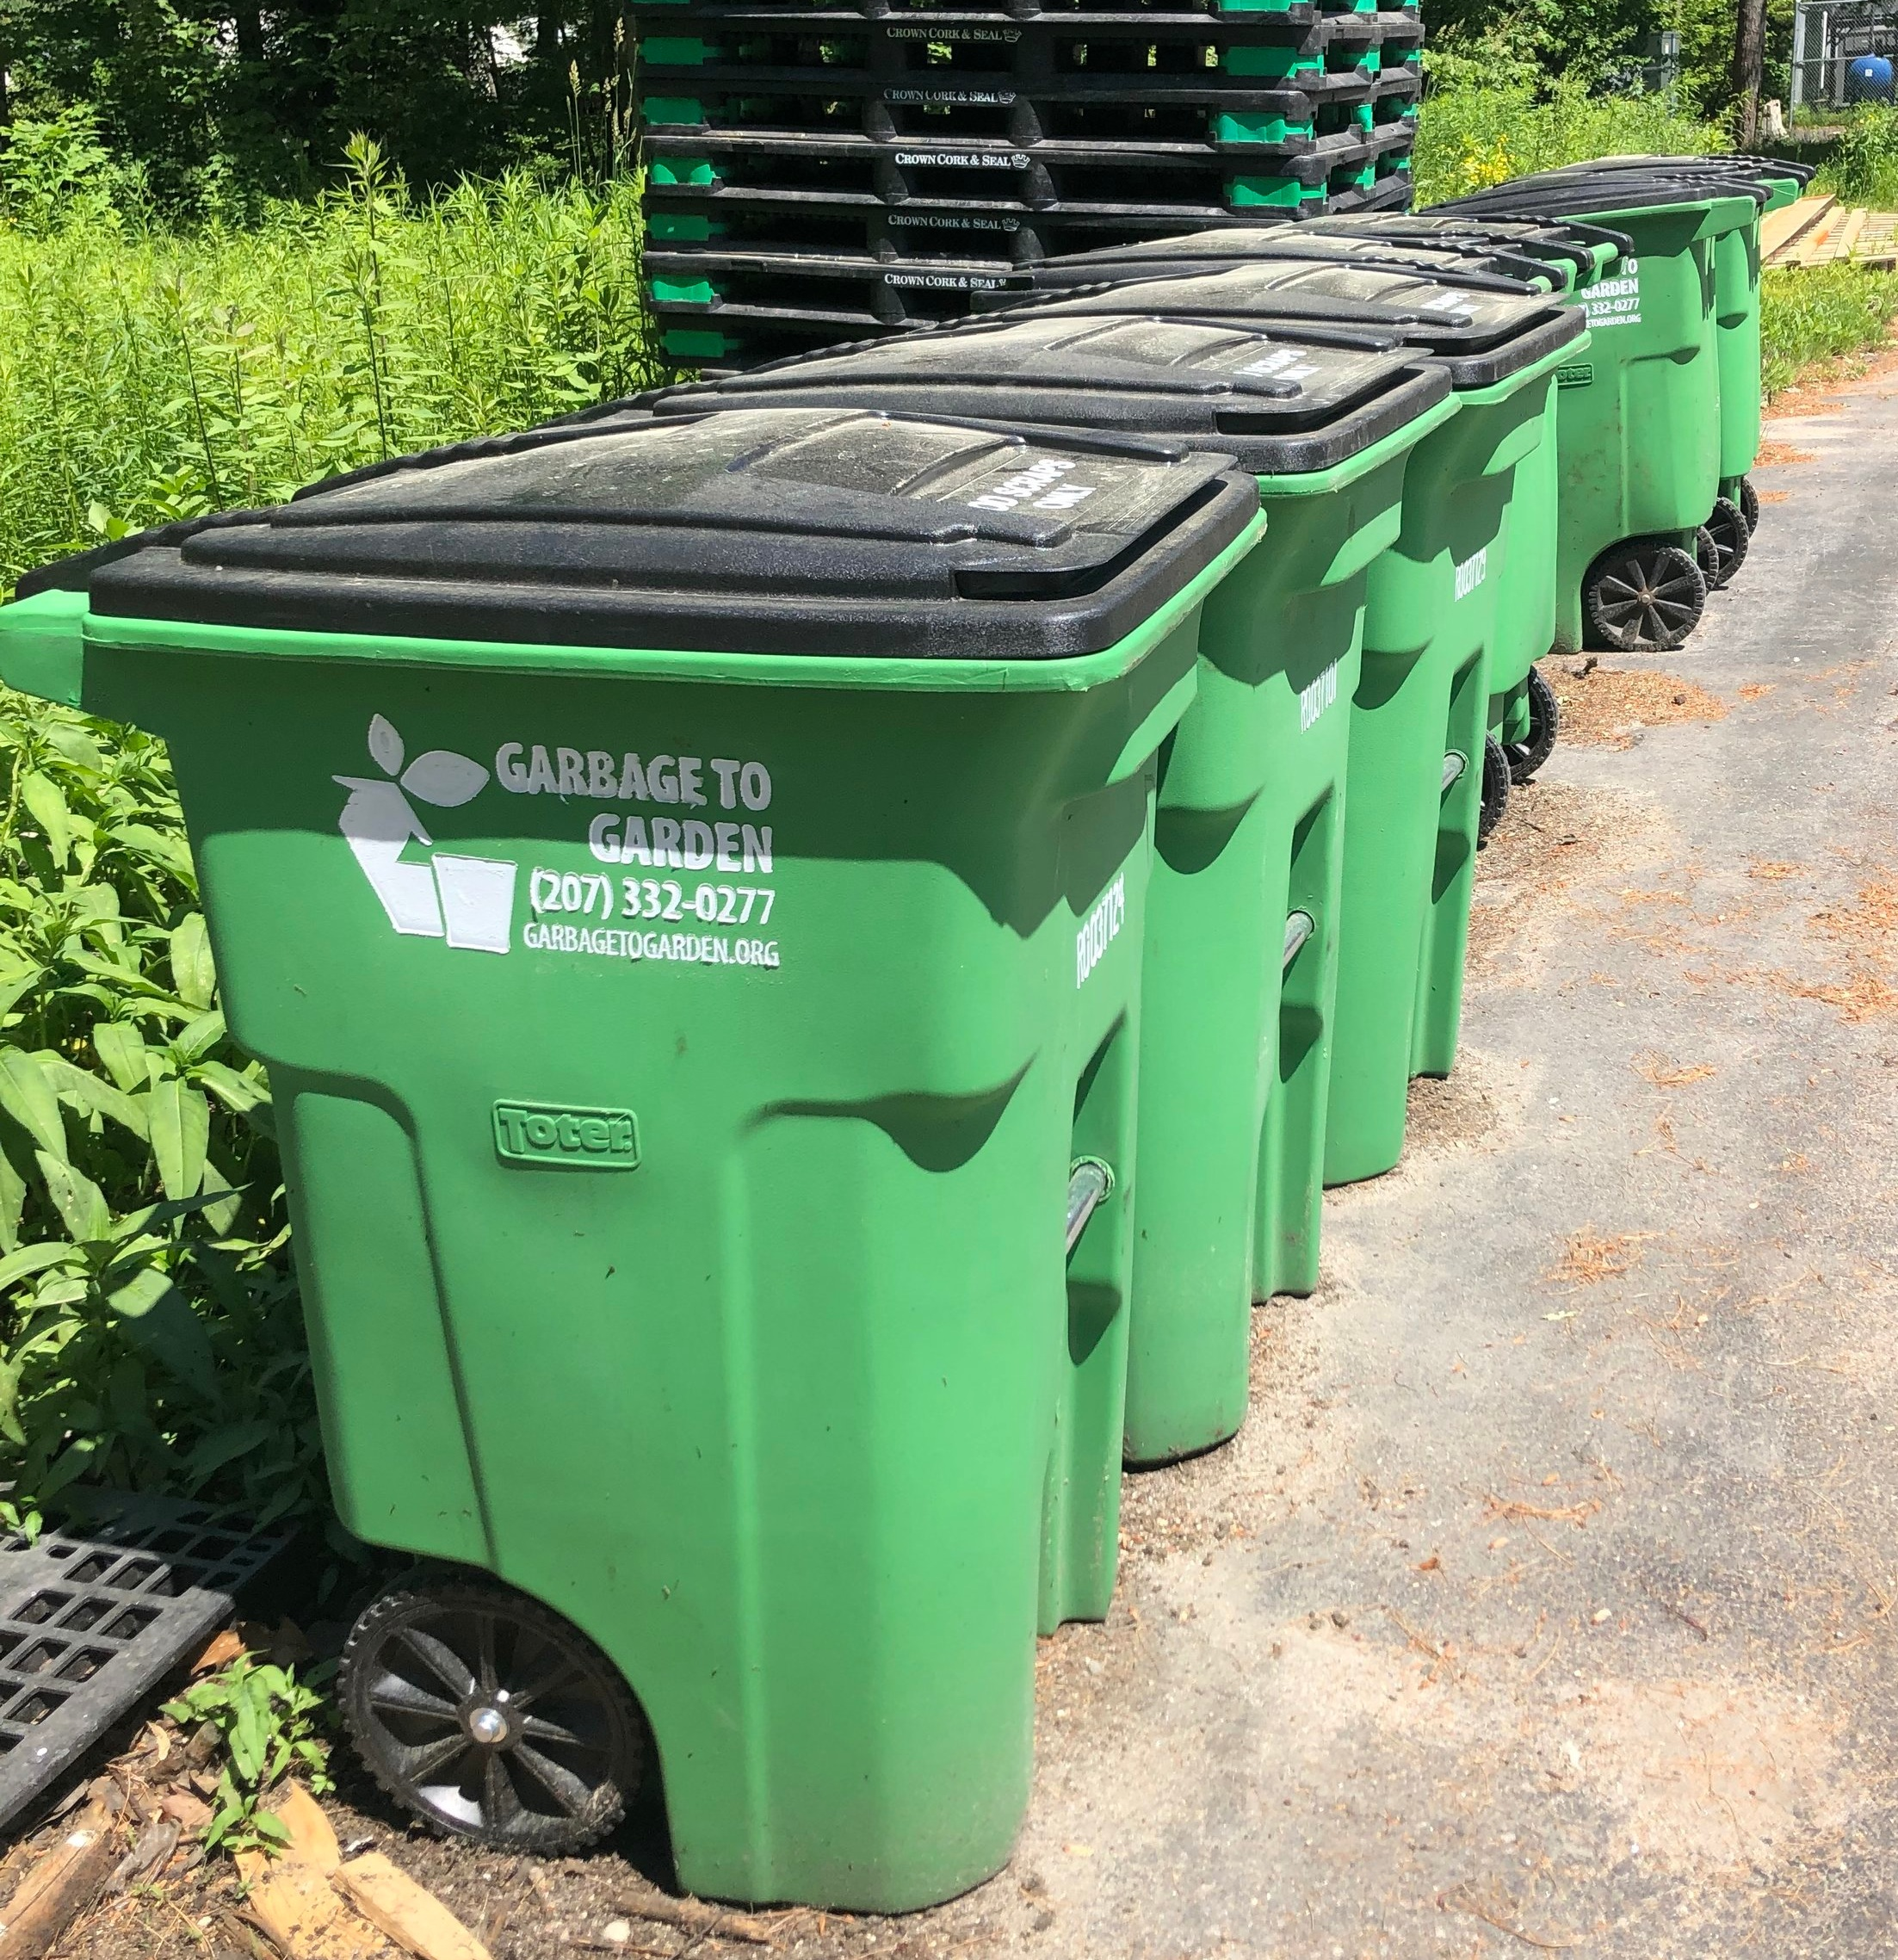 RECYCLING & COMPOST - We reduce landfill waste by recycling and composting everything we can.